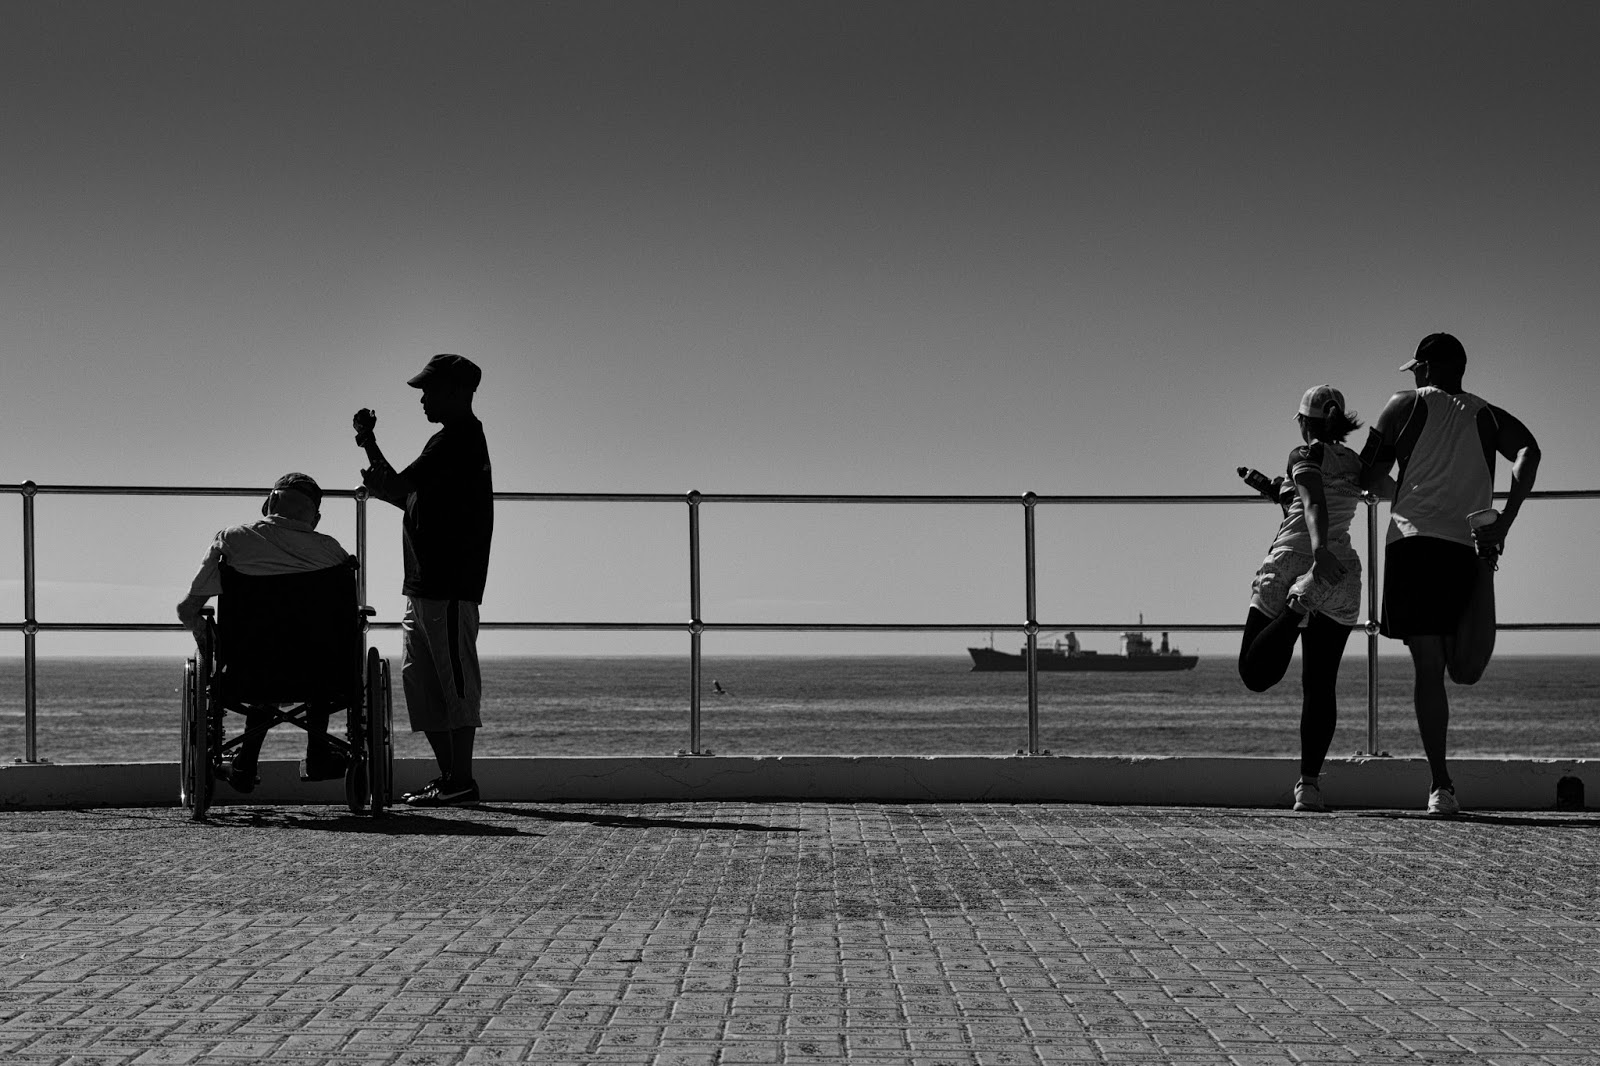 A scene from the seapoint promenade.